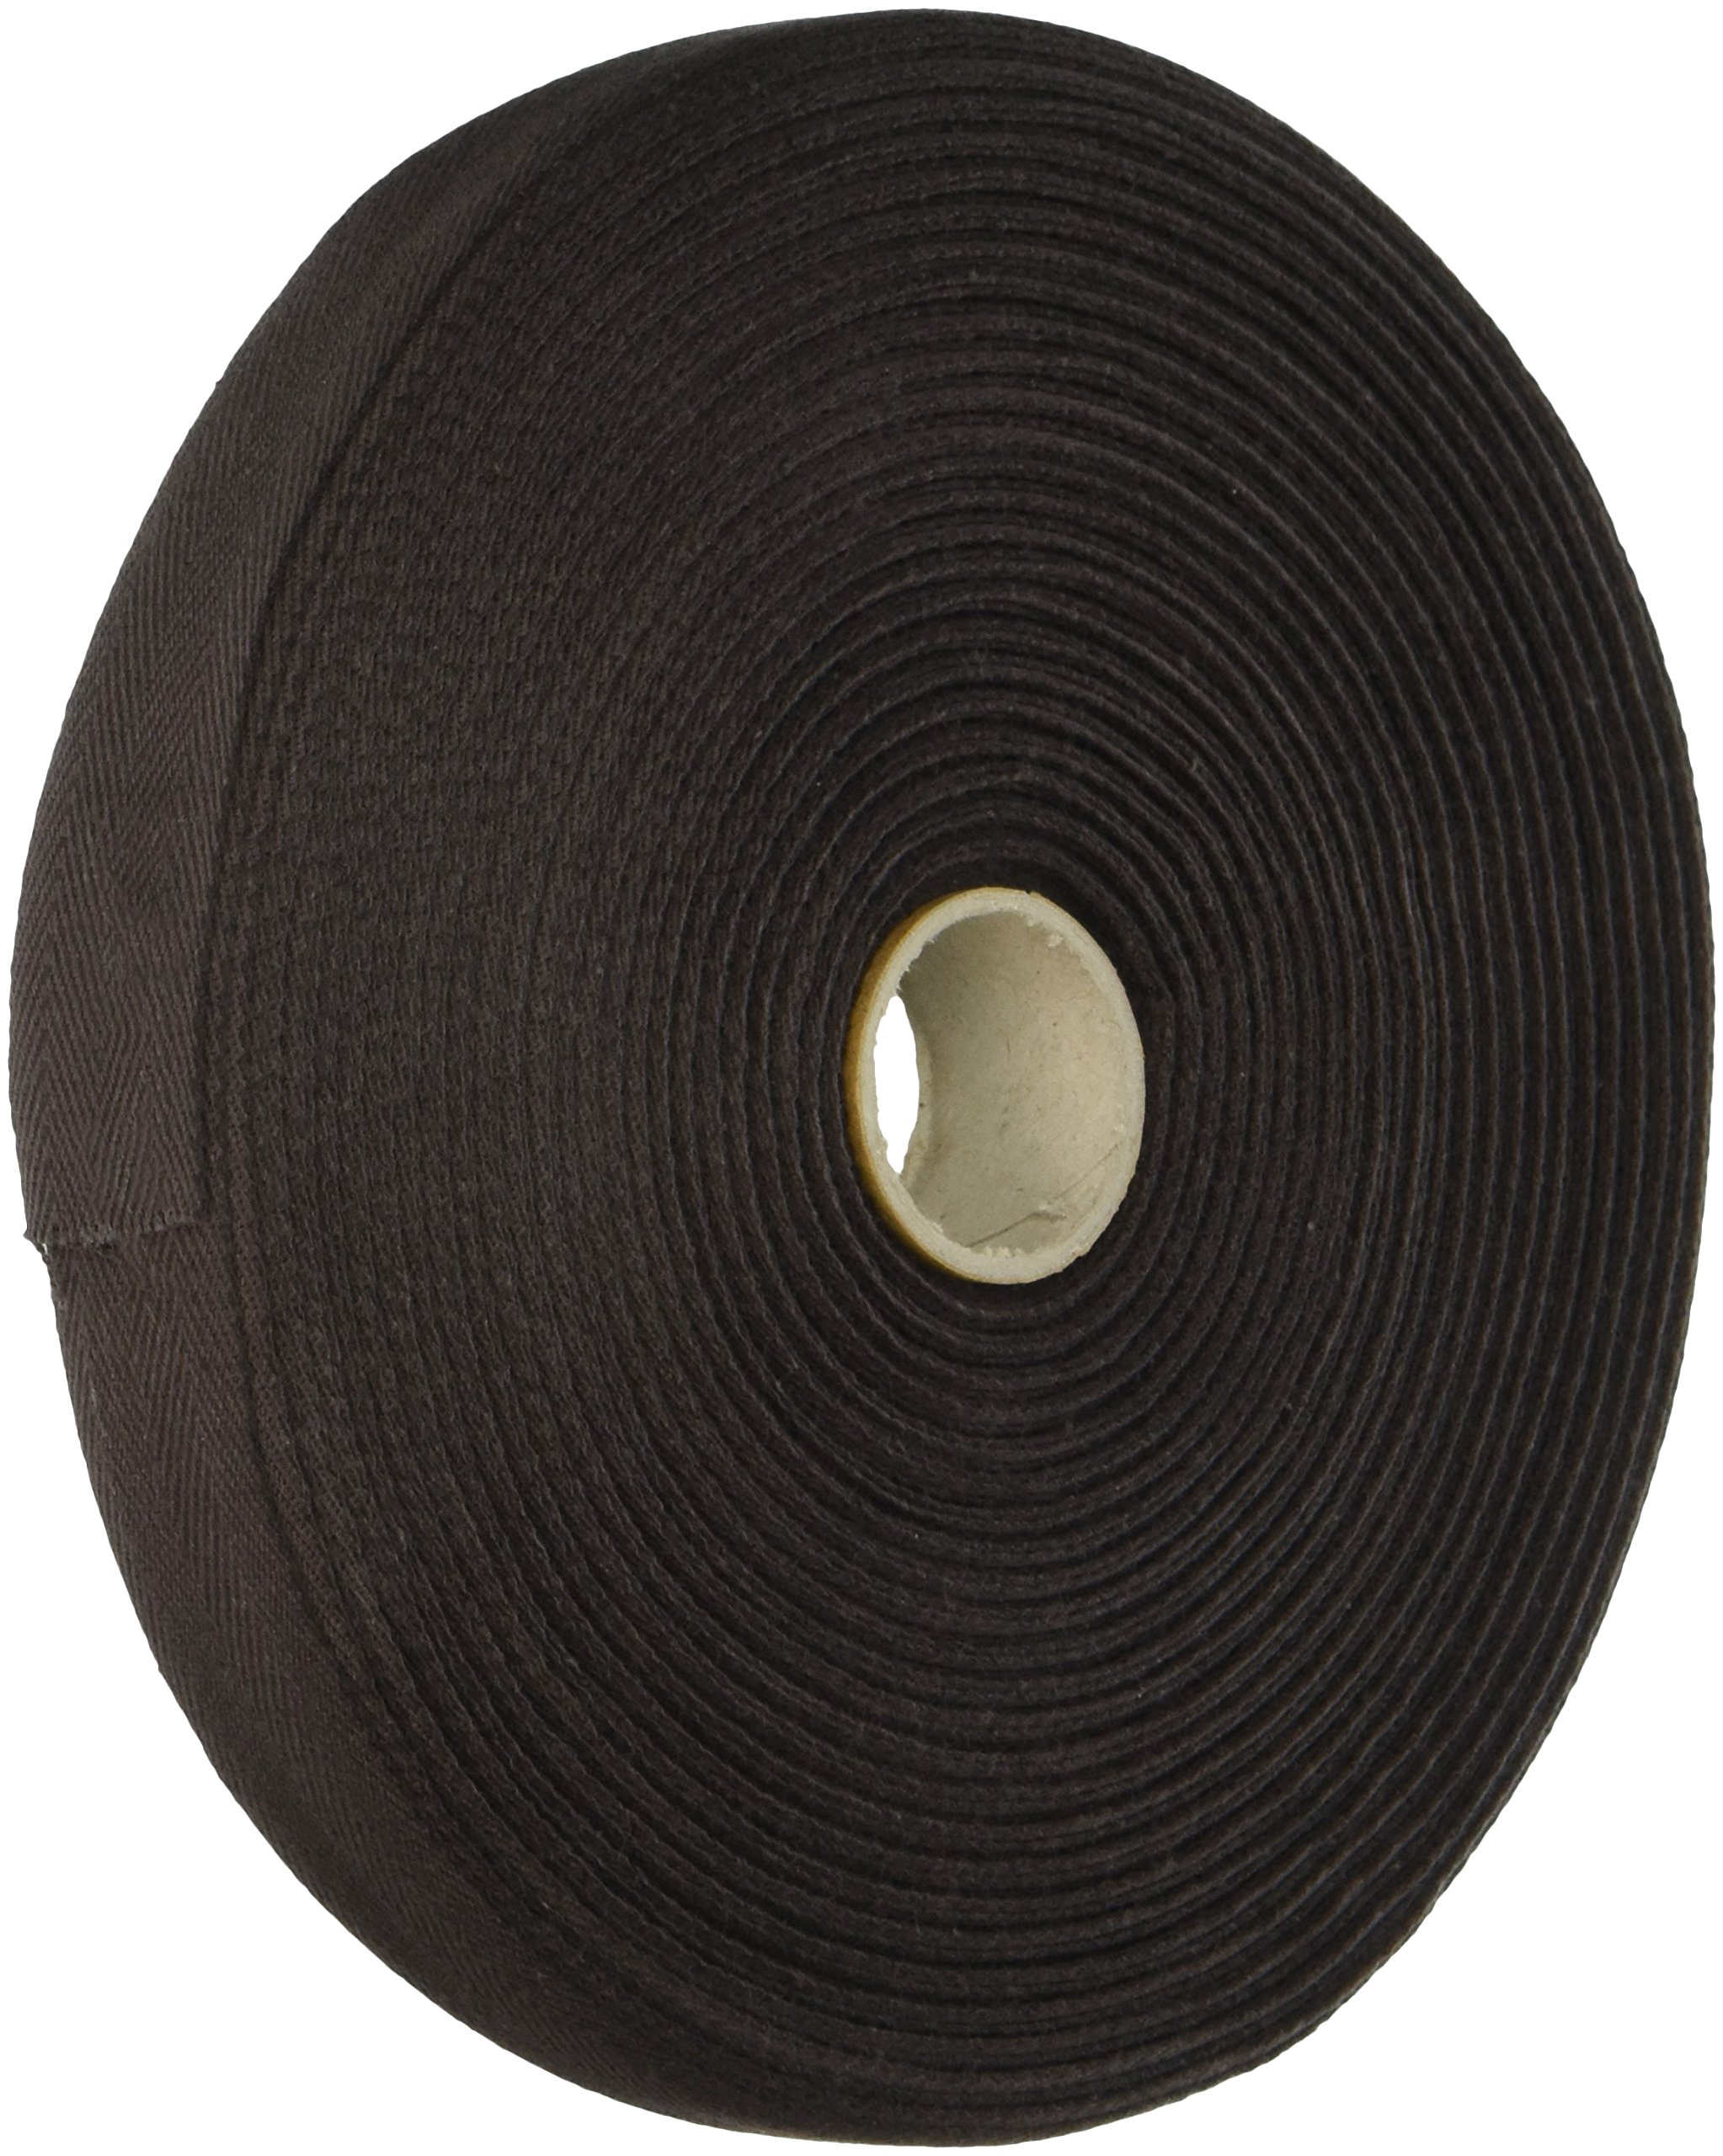 Products From Abroad 107-25-56 Cotton Twill Tape, 1-Yard x 55-Yard, Dark Brown